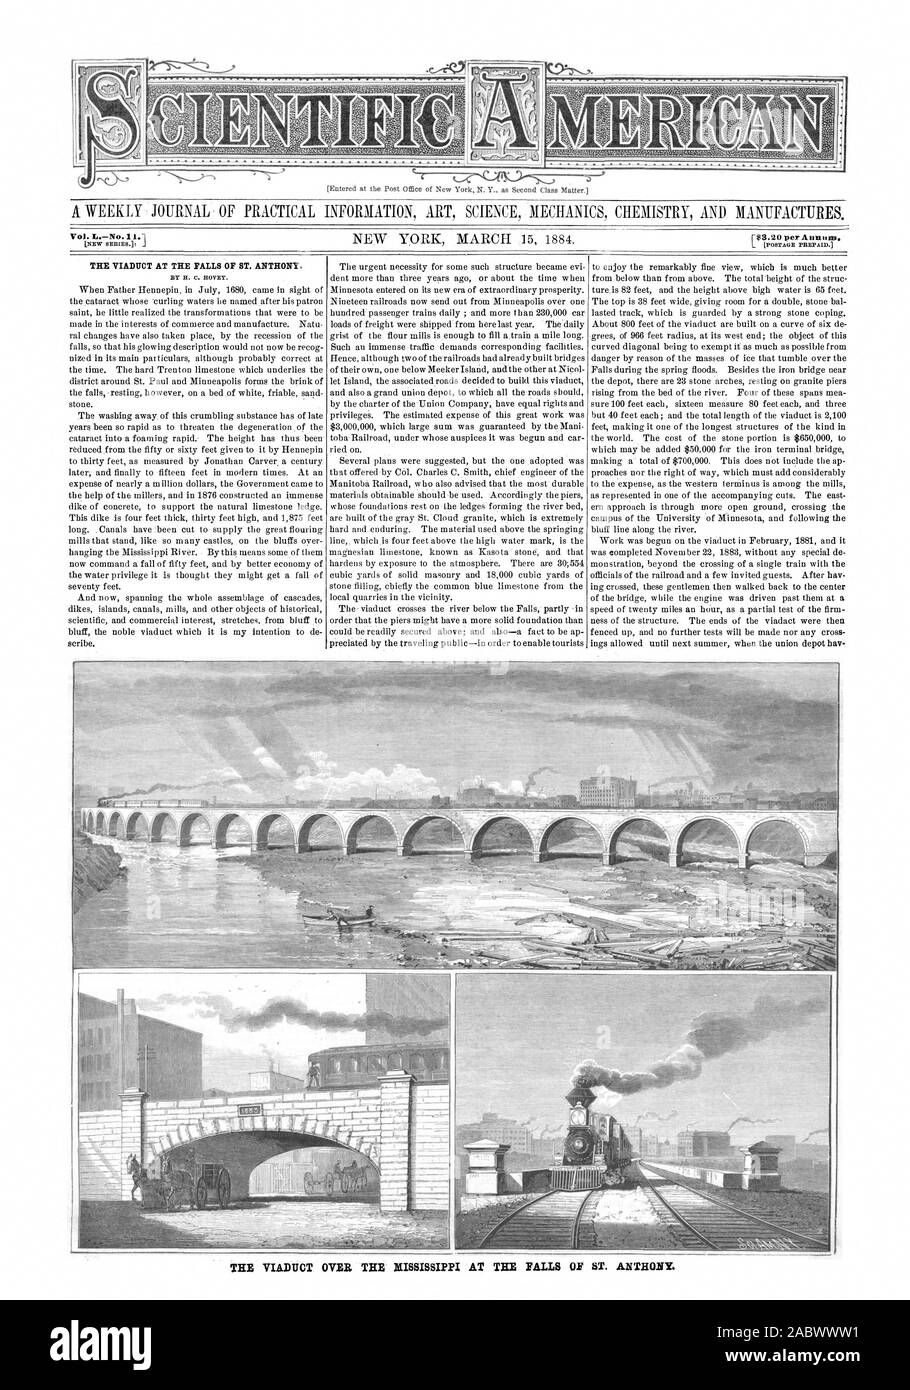 El viaducto EN LAS CATARATAS DE ST. ANTHONY. Por H. C. HOVEY. Vol. Nº el viaducto sobre el río MISSISSIPPI EN LAS CATARATAS DE ST. ANTHONY, Scientific American, 84-03-15 Foto de stock